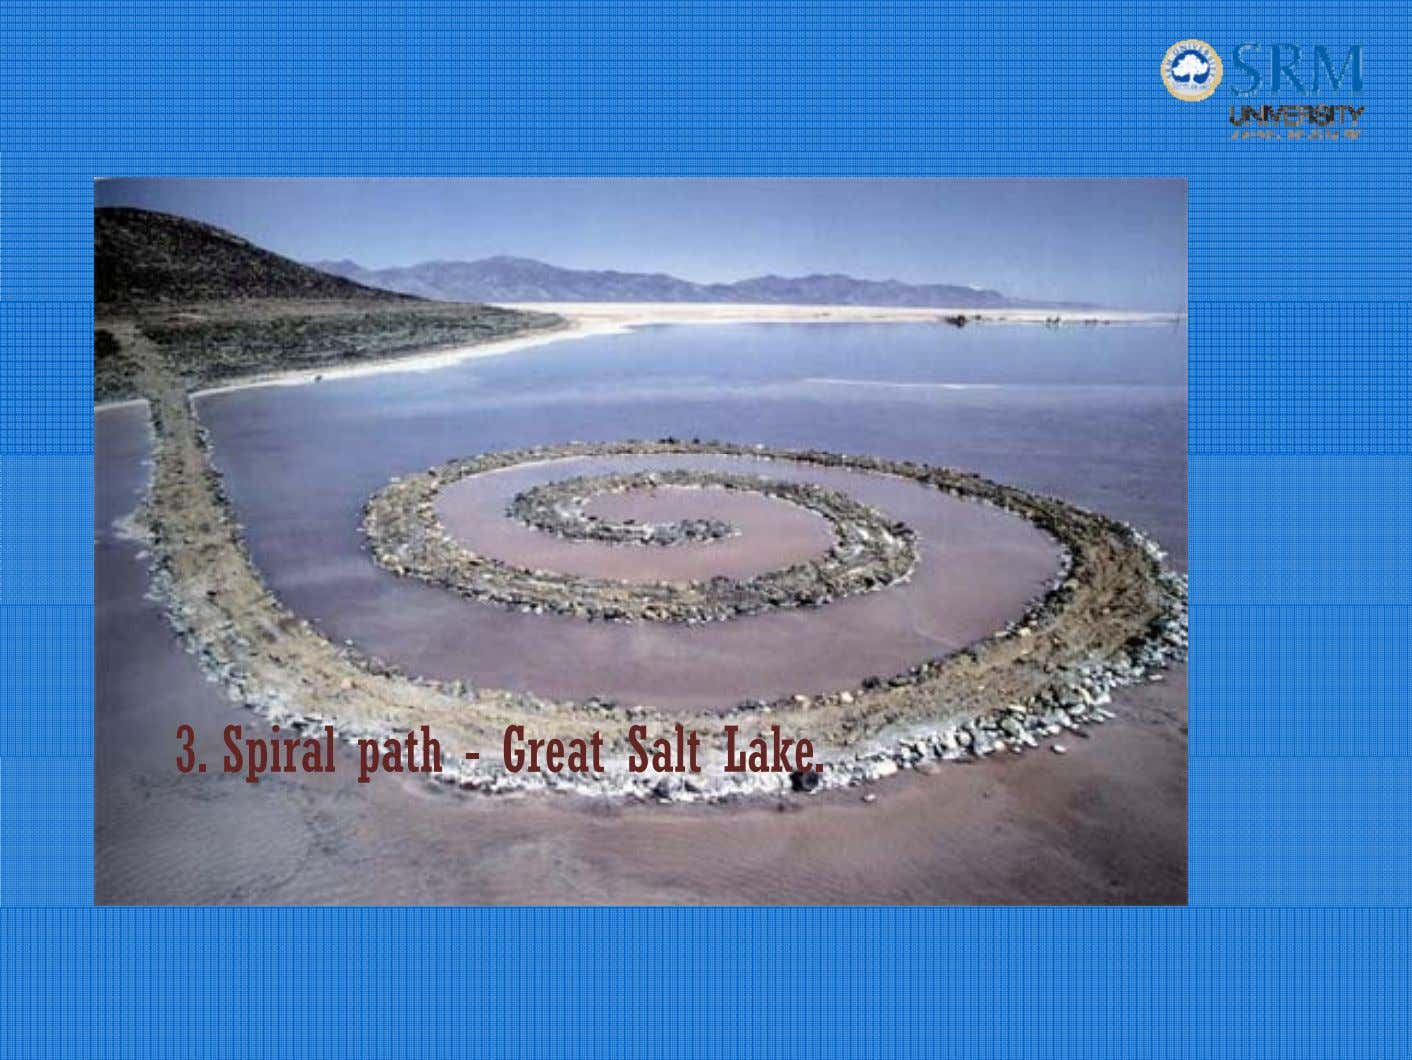 3. Spiral path - Great Salt Lake.